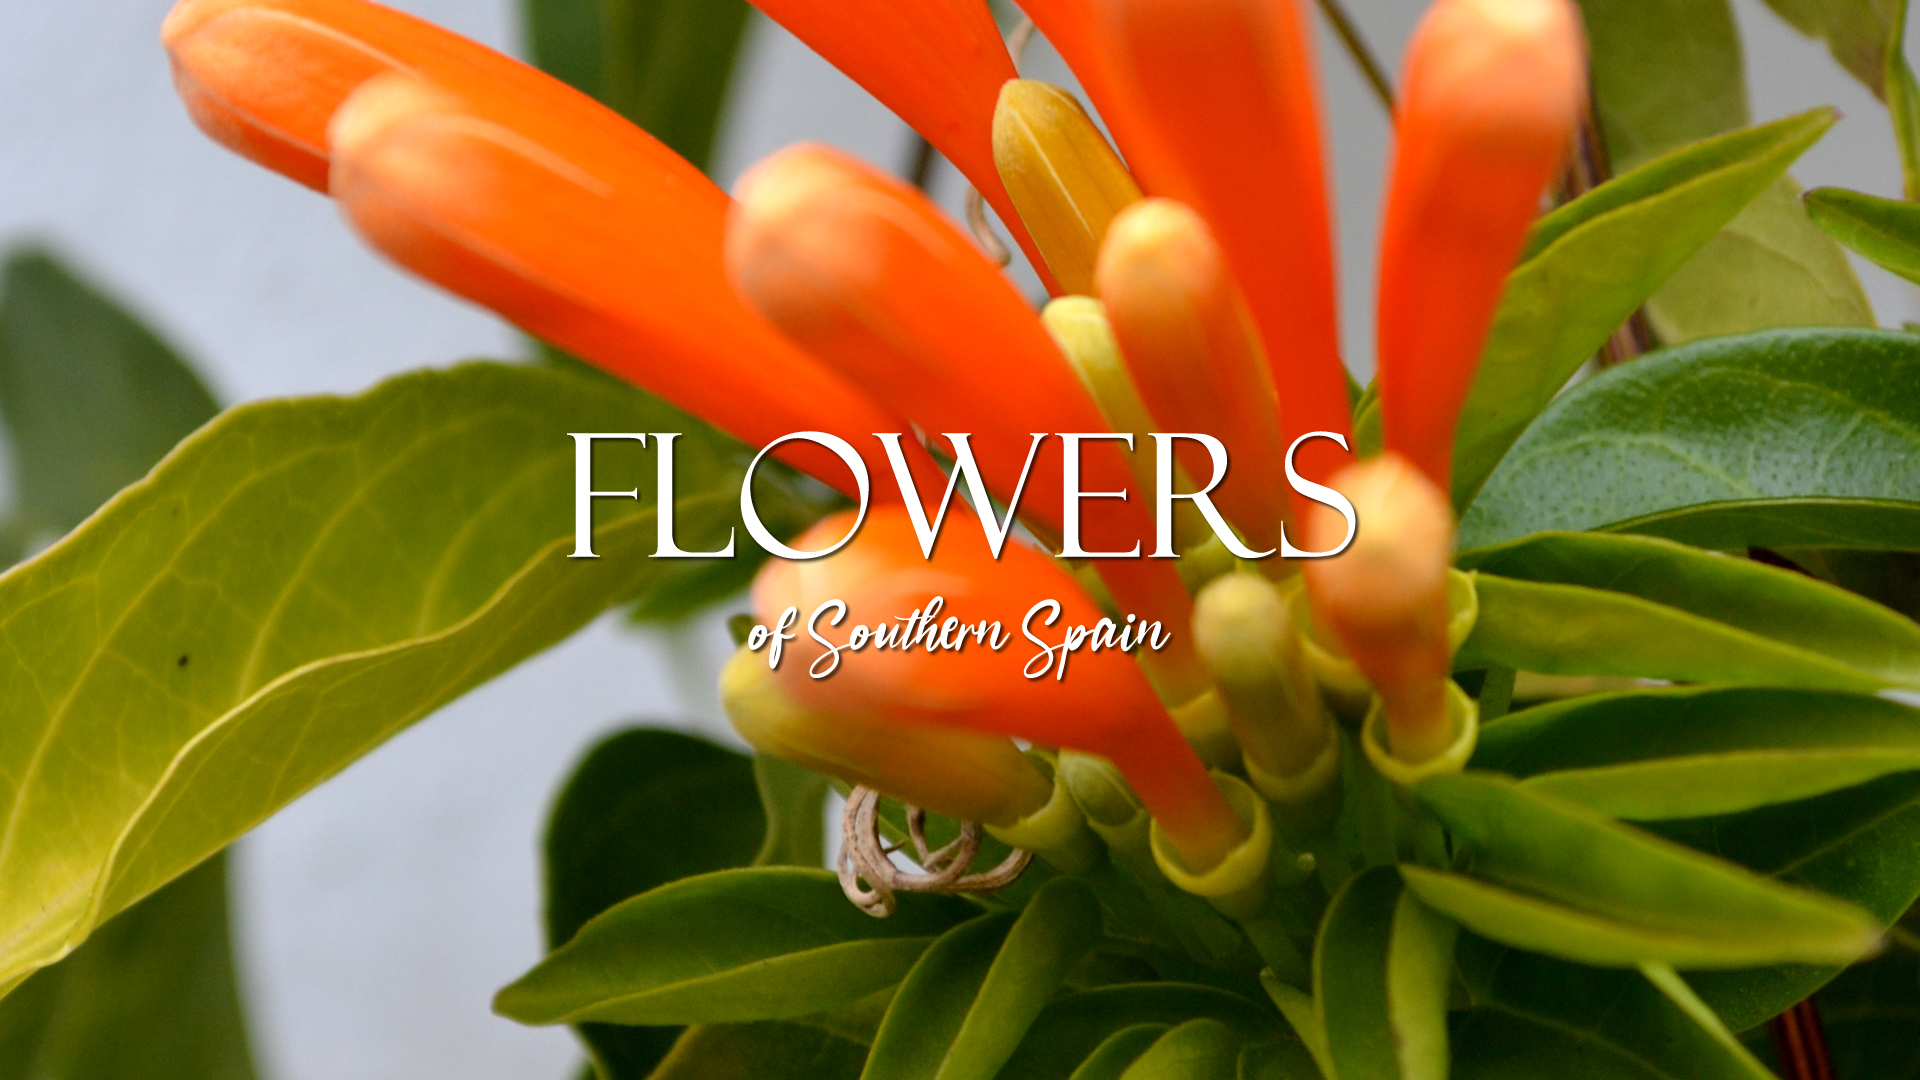 Flowers of Southern Spain